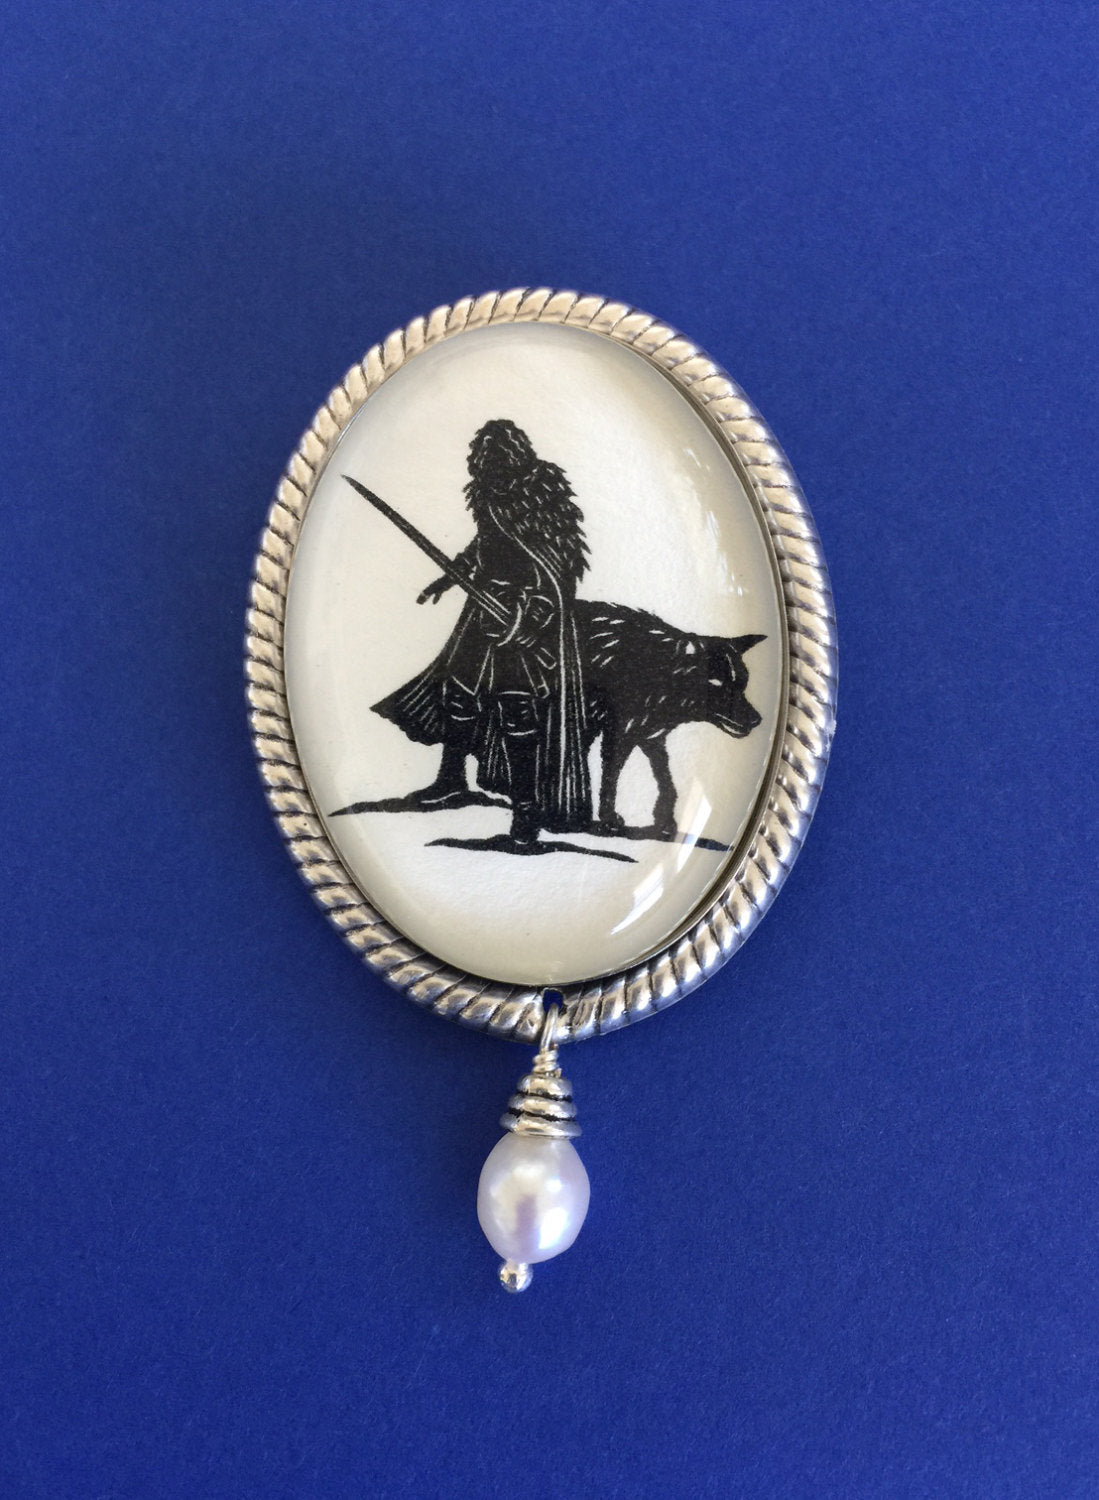 Game of Thrones Jon Snow Brooch - Silhouette Jewelry